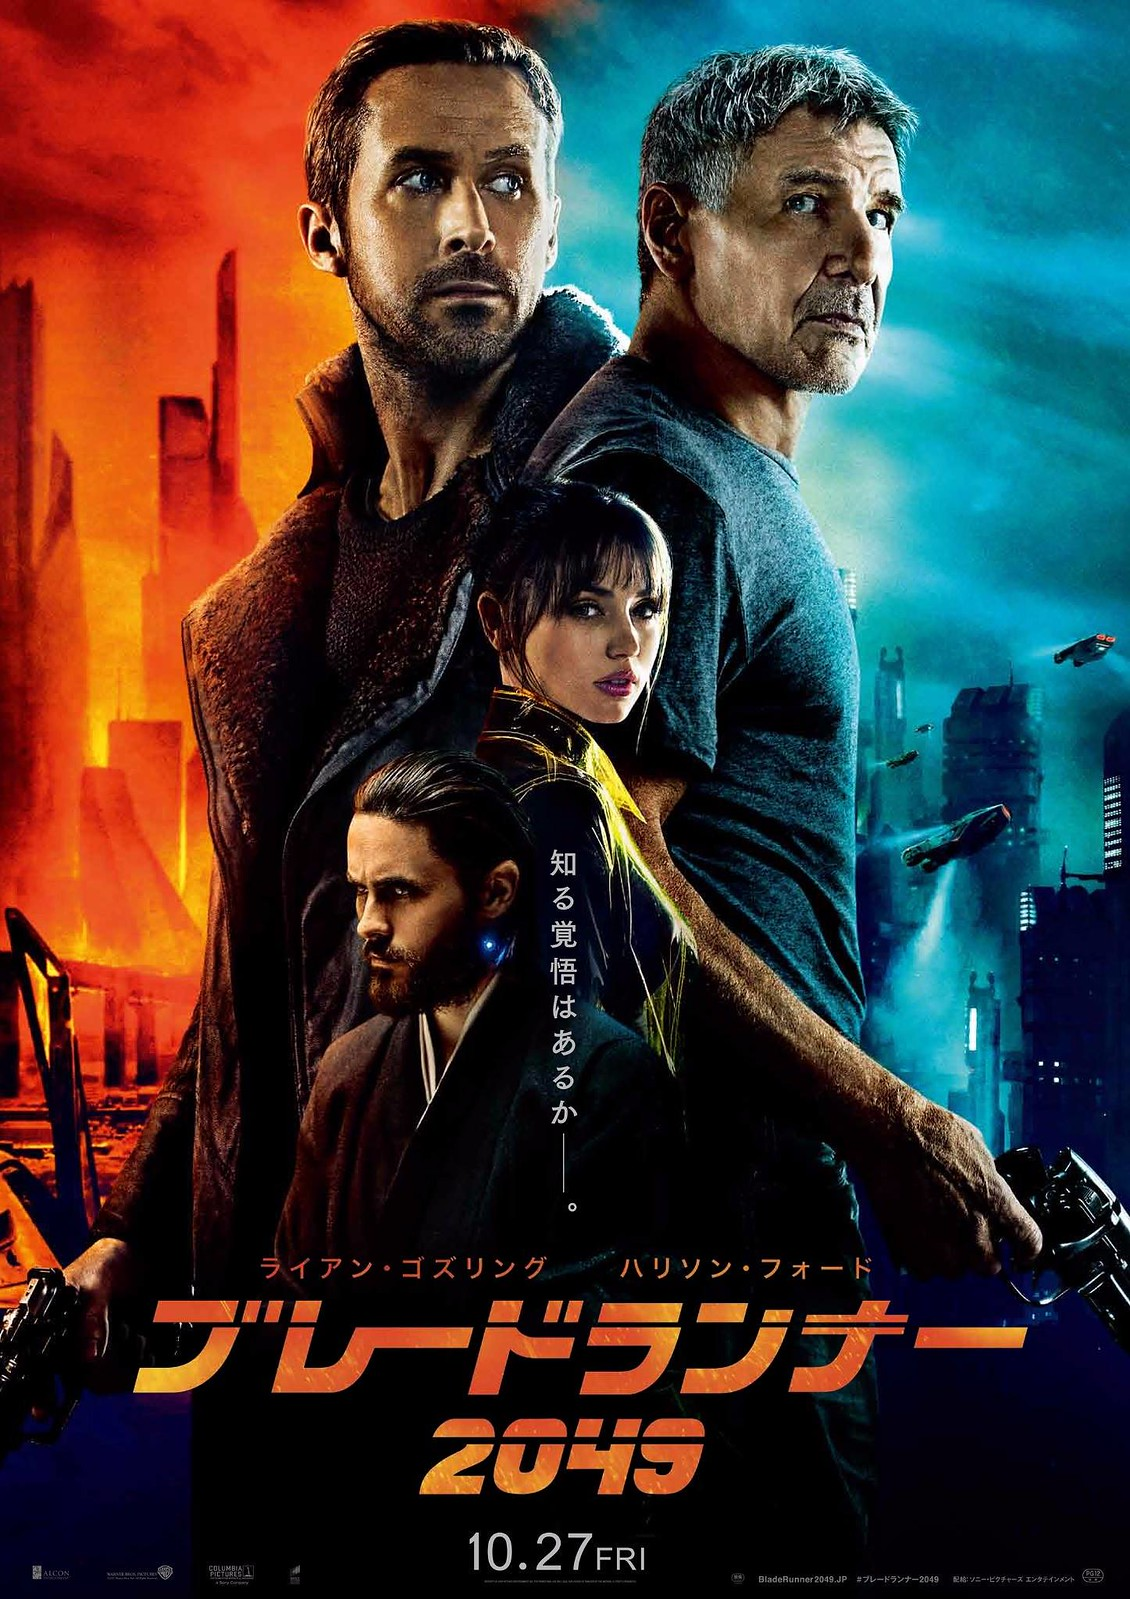 With A New Japanese Poster For2049a Slight Color Tonal Variation Of The USVersion Premiering October 27th 2017 In Japan